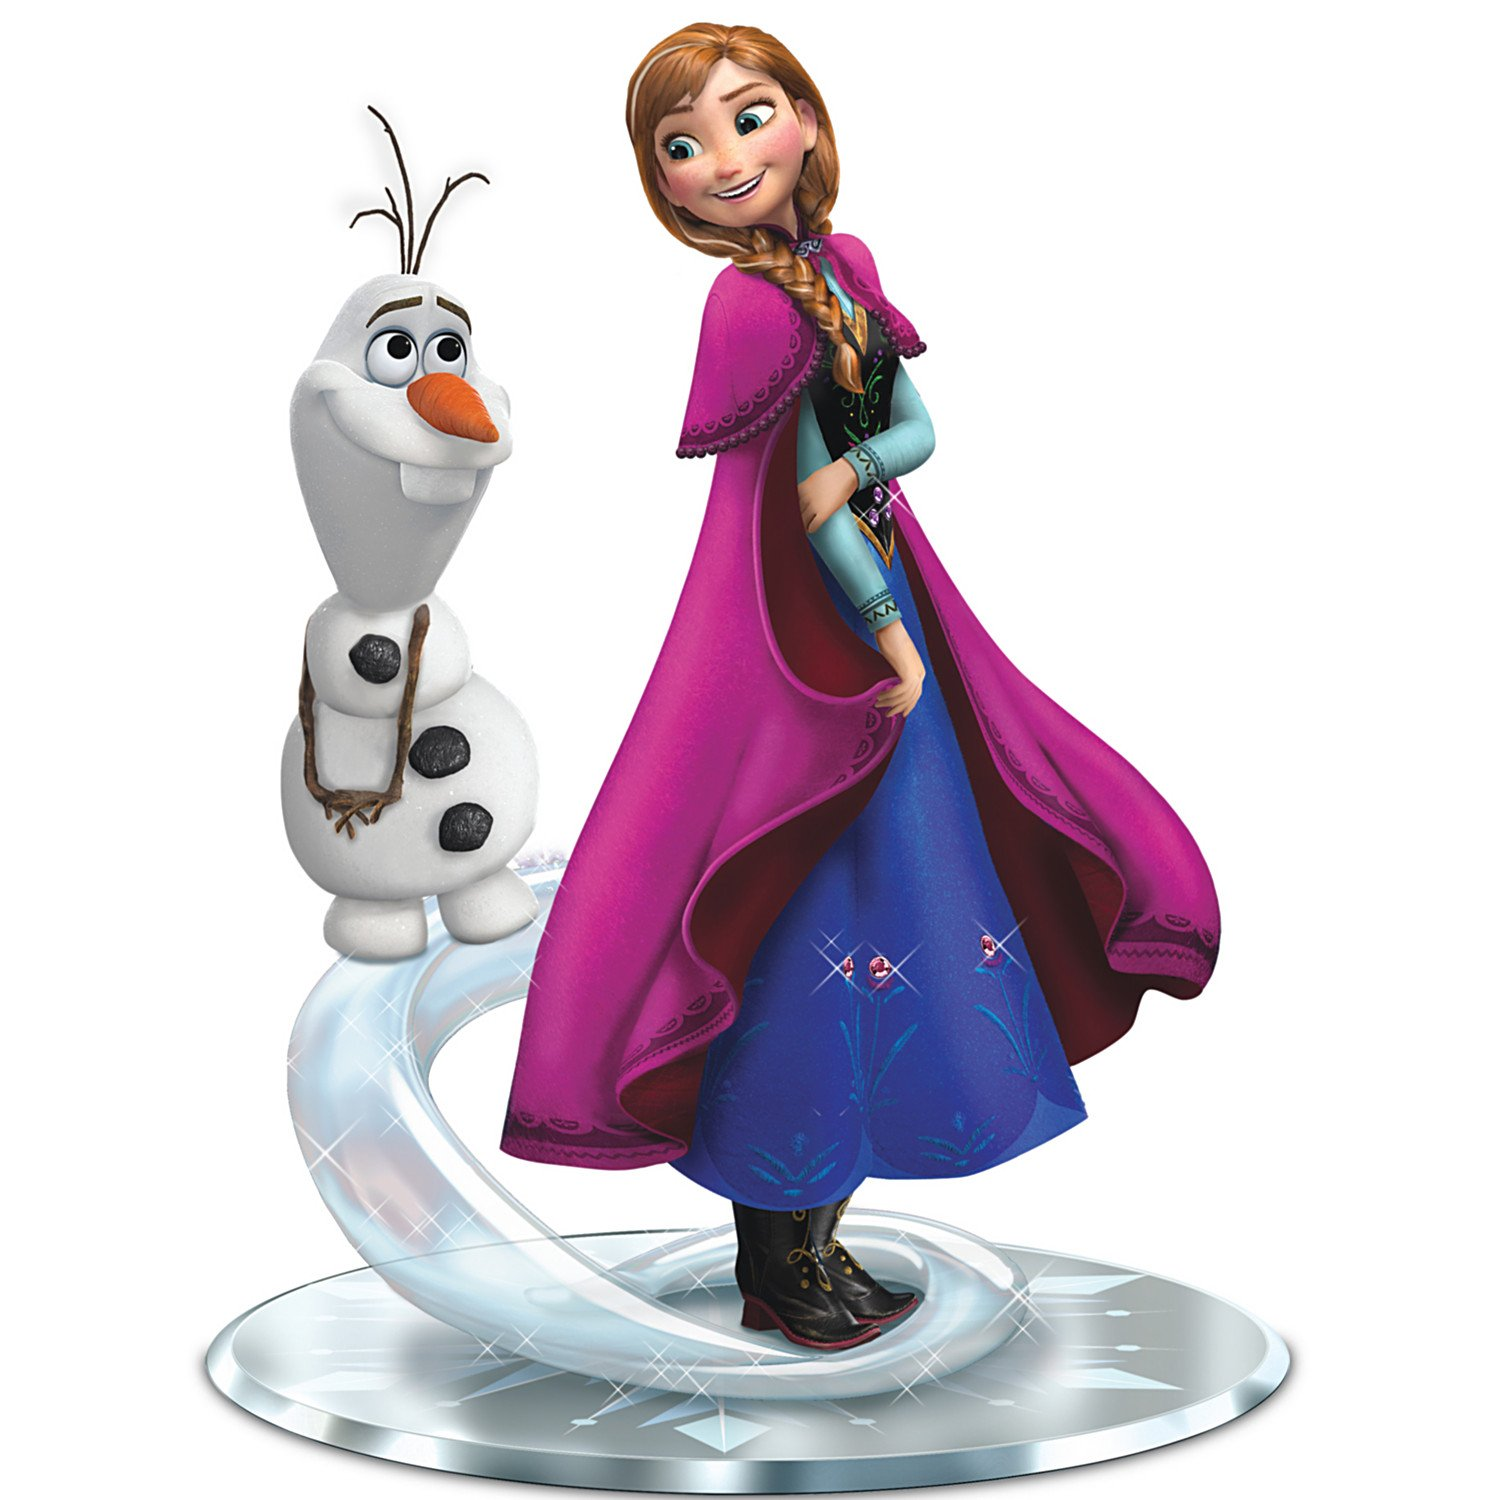 Anna and Olaf Figurine: Do You Want To Build A Snowman?